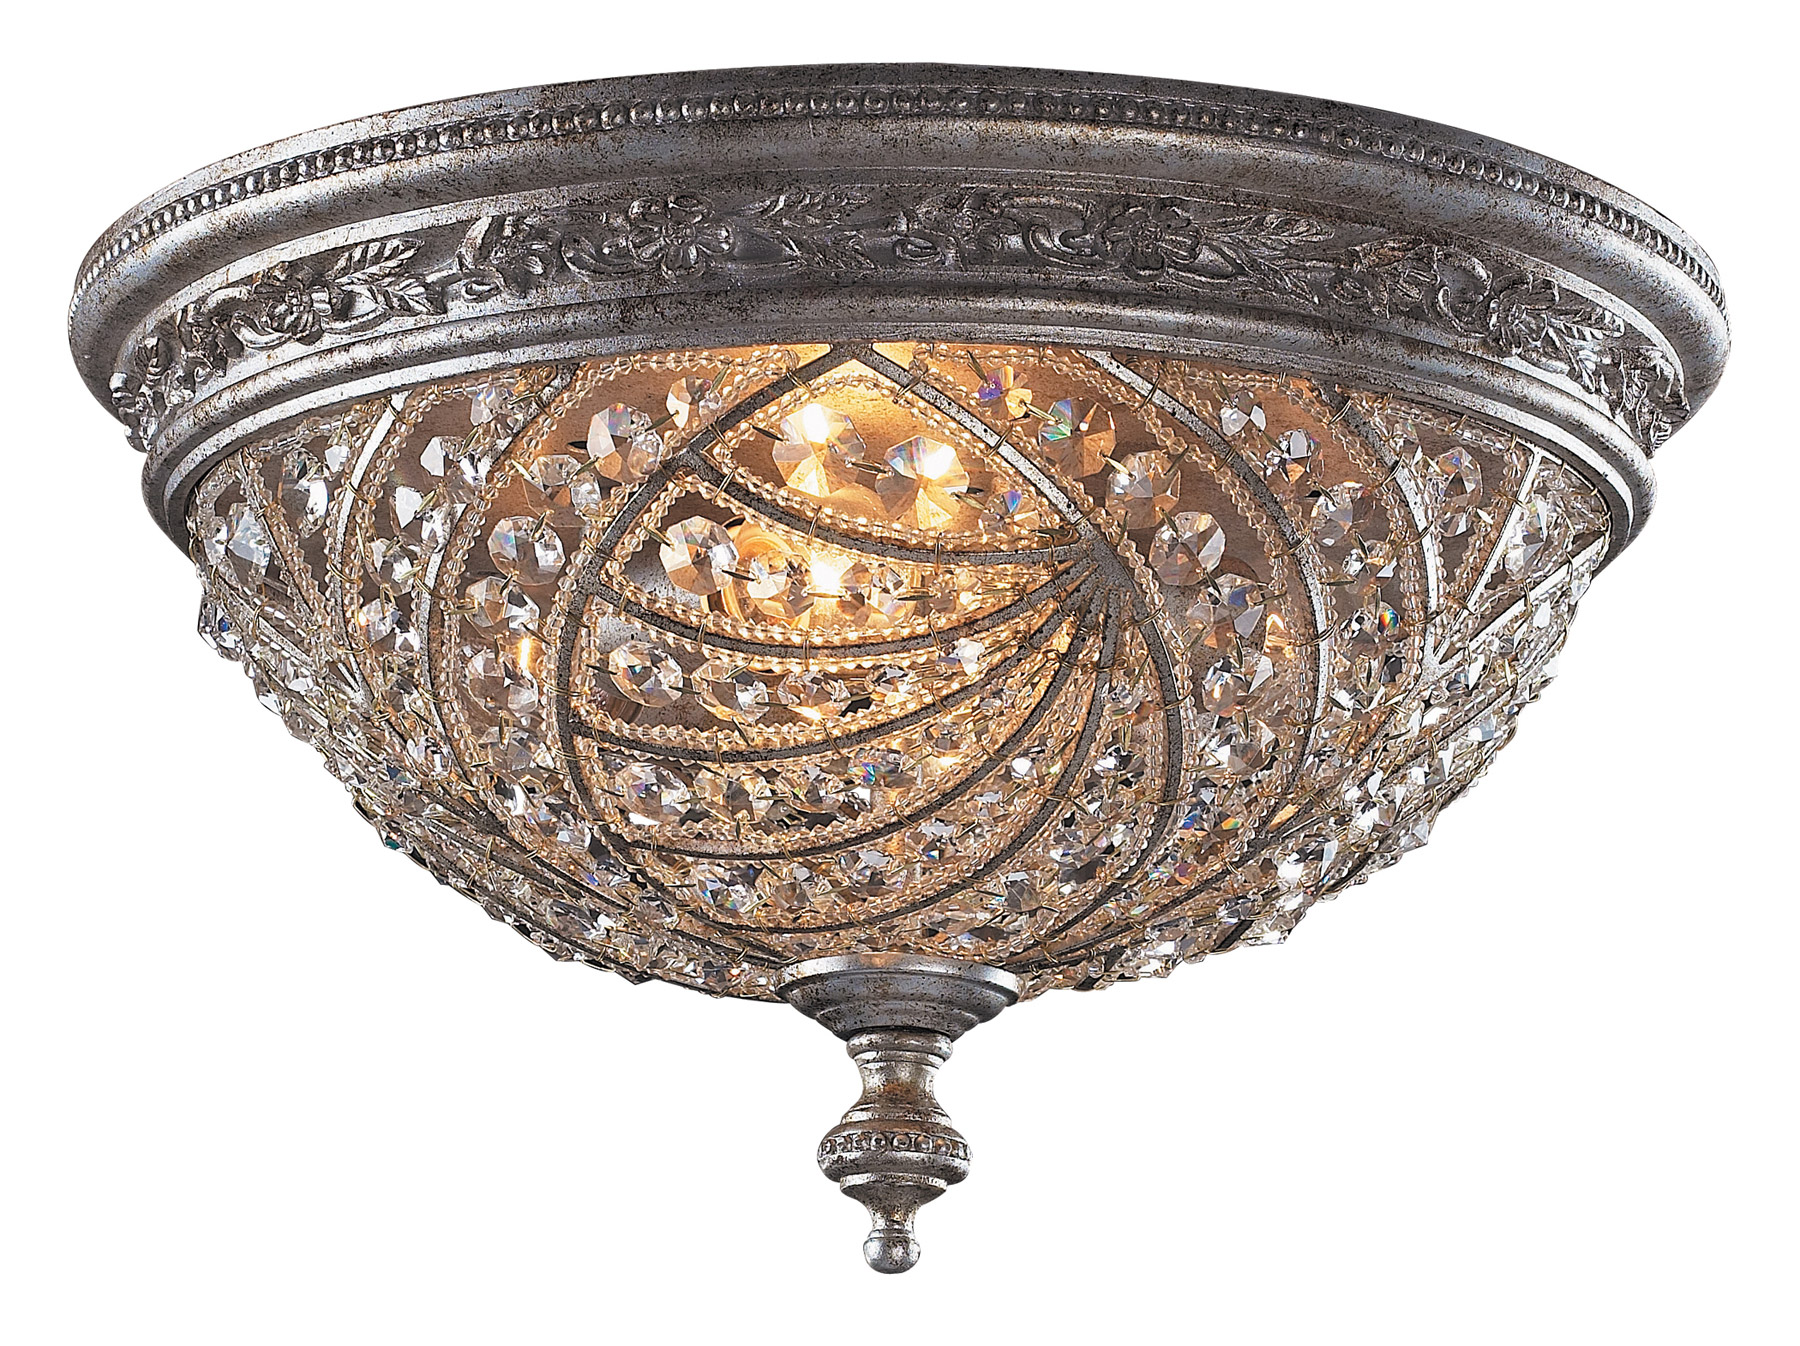 Elk Lighting 6232 4 Crystal Renaissance Flush Mount